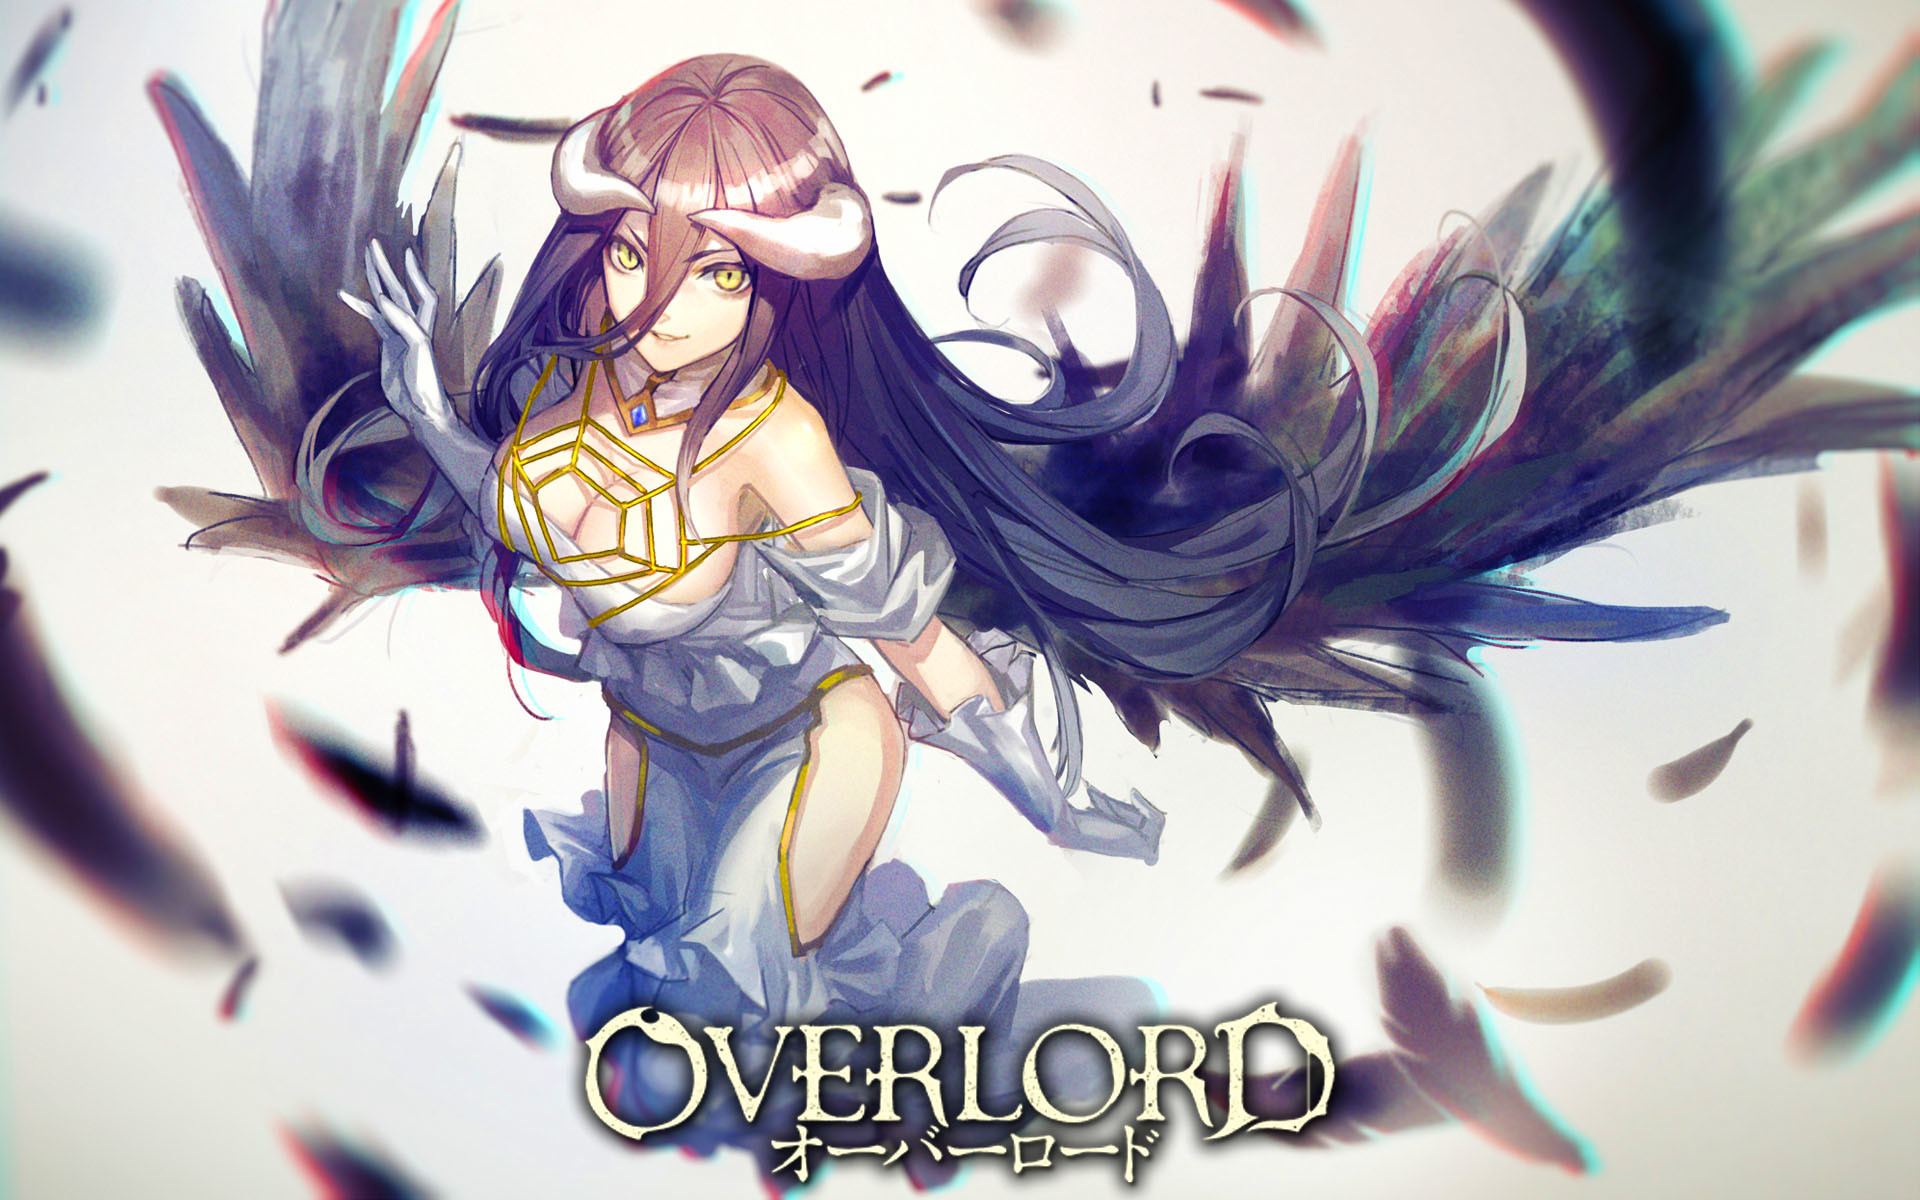 Albedo Overlord Wallpaper (75+ images)